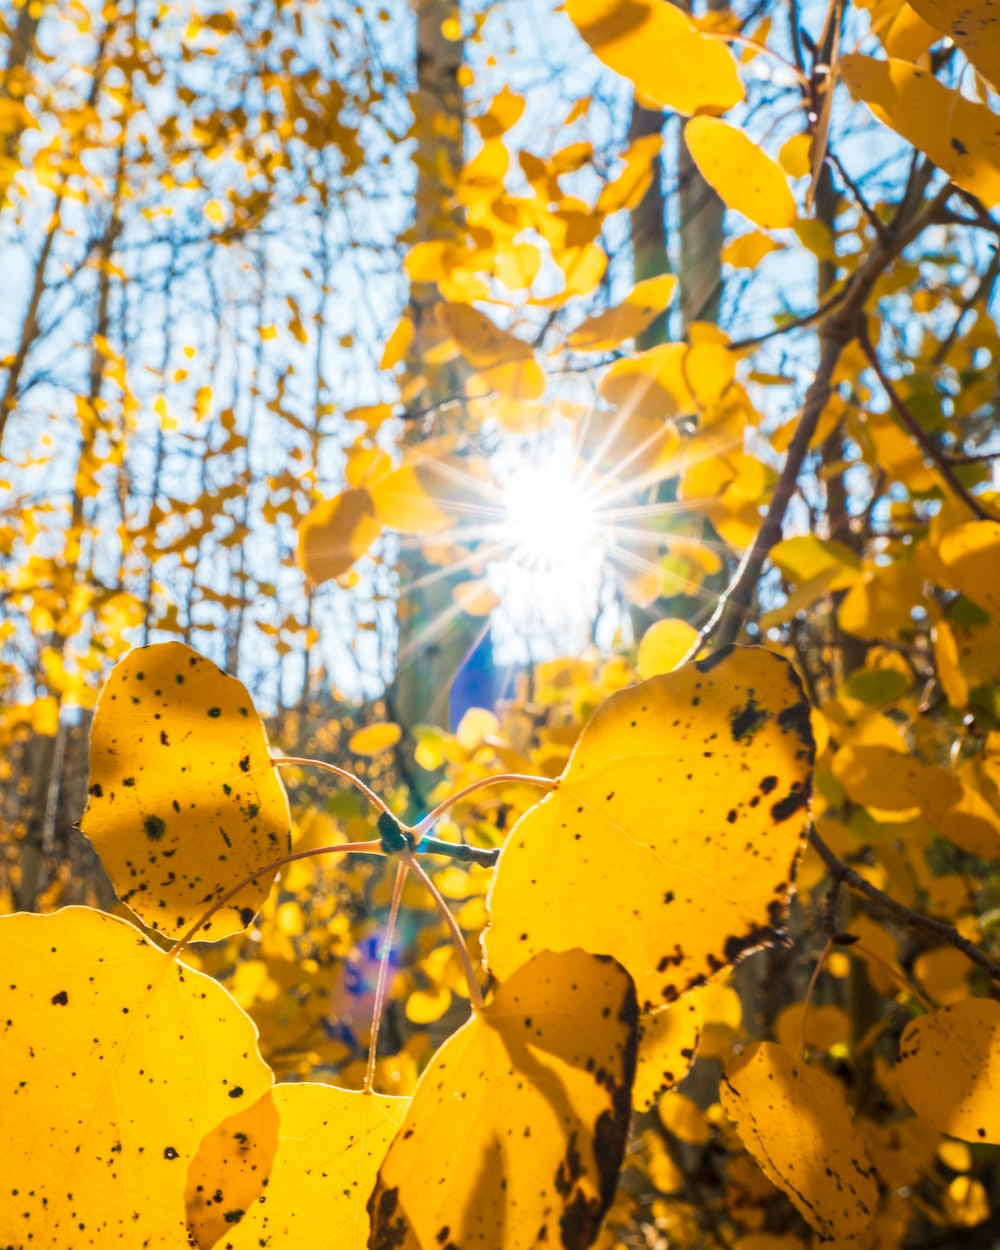 yellow leaves on tree during daytime